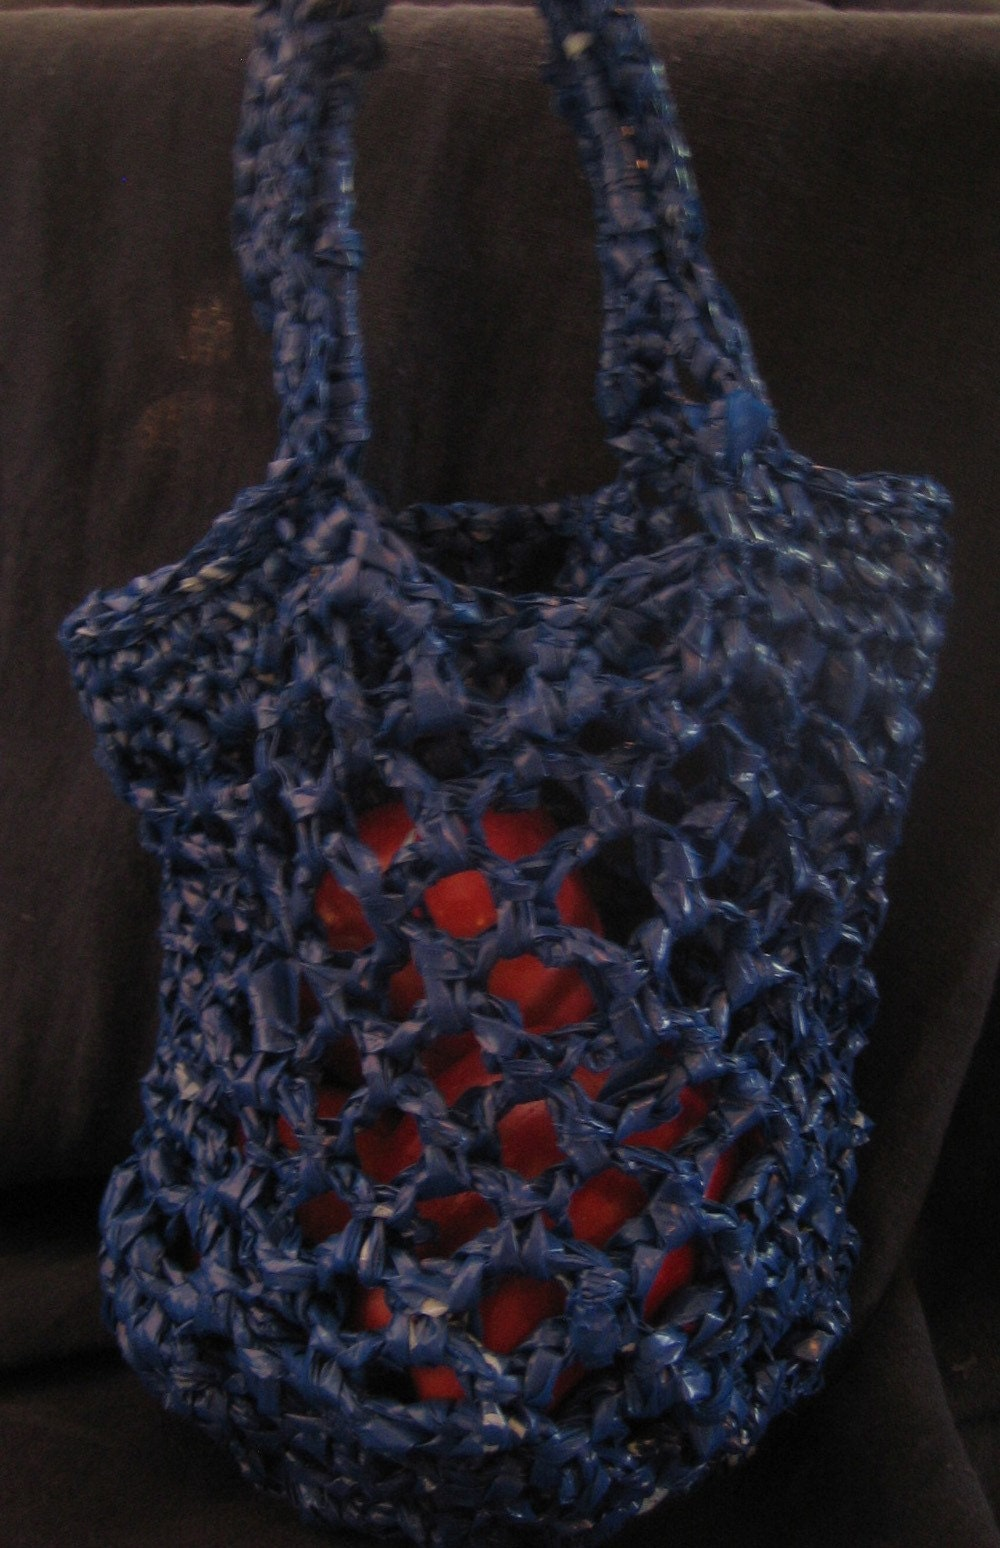 Crochet Pattern For Bags Plastic : CROCHET WITH PLASTIC BAGS How To Crochet